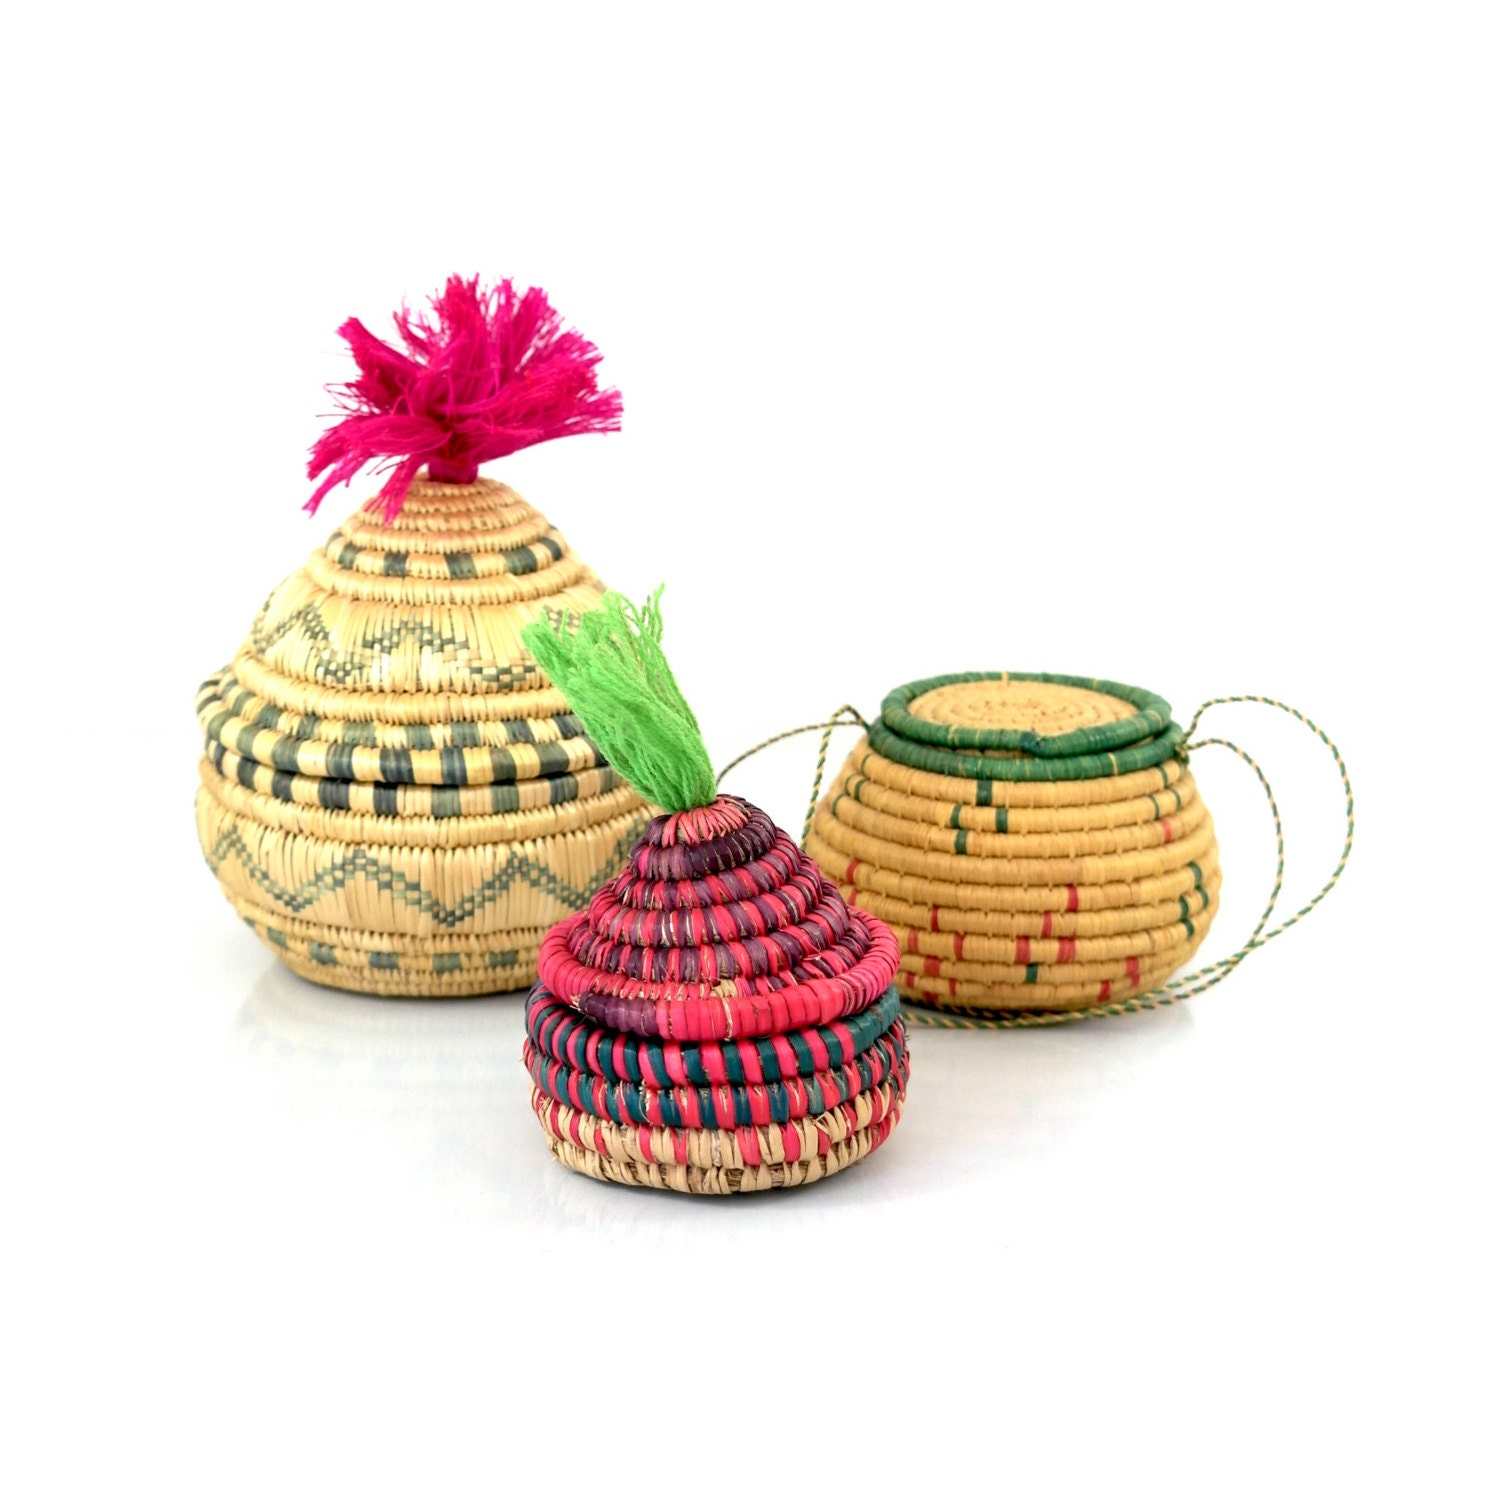 trio small raffia baskets with lids hand woven baskets. Black Bedroom Furniture Sets. Home Design Ideas